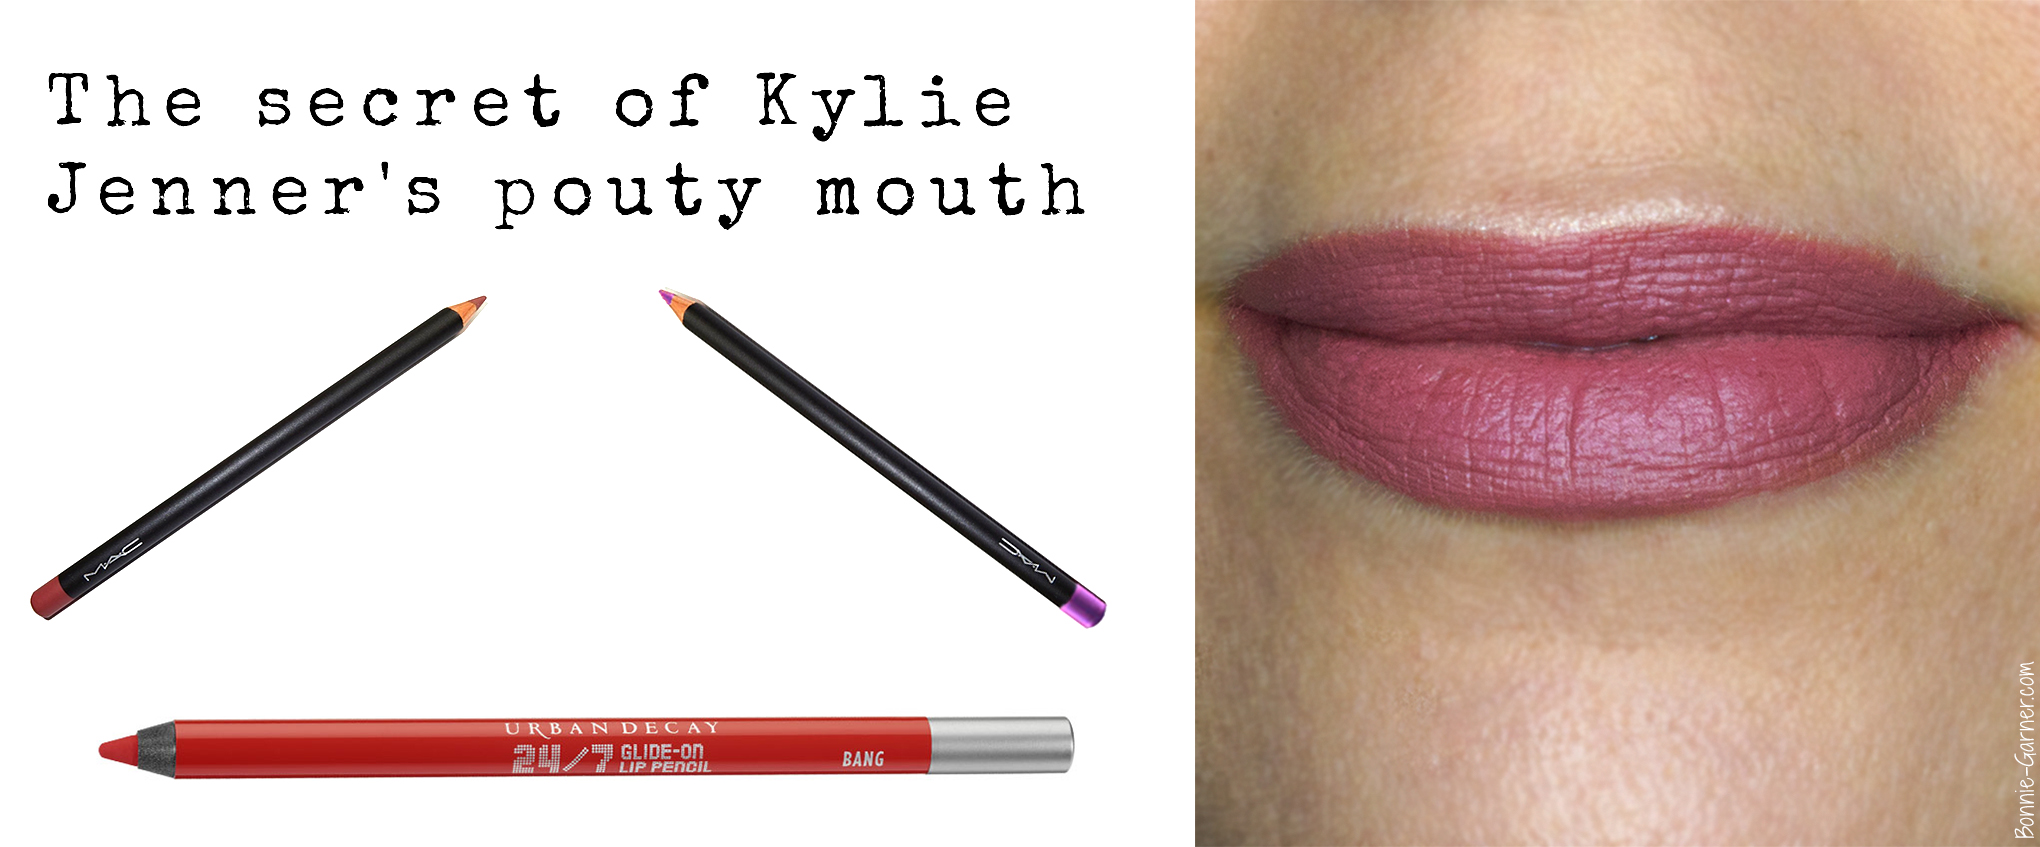 The secret of Kylie Jenner's pouty mouth